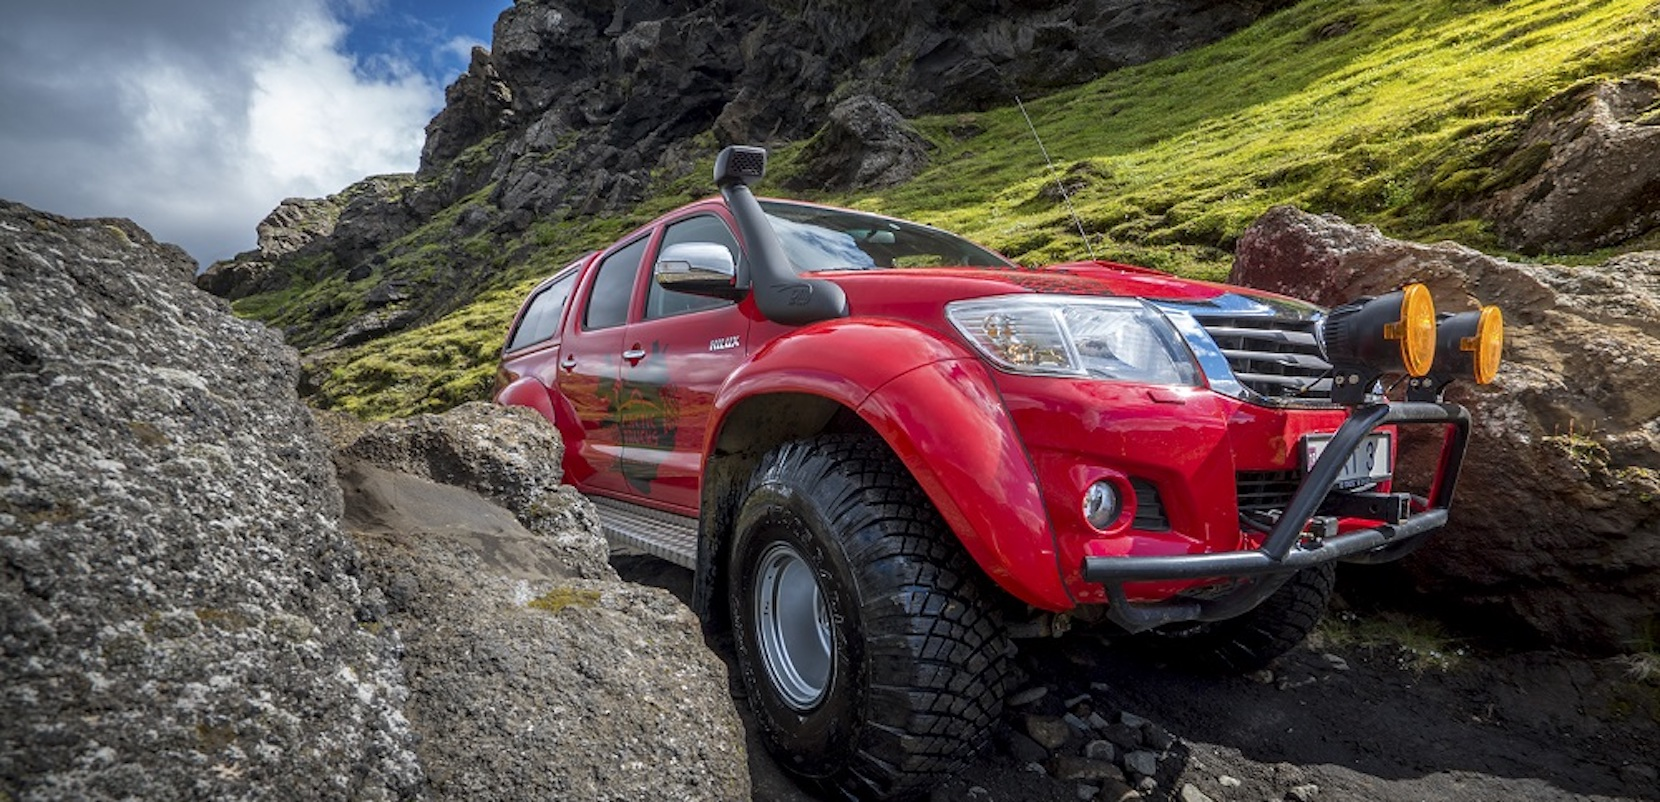 Extreme 4x4 adventure explore without limits , Day trip